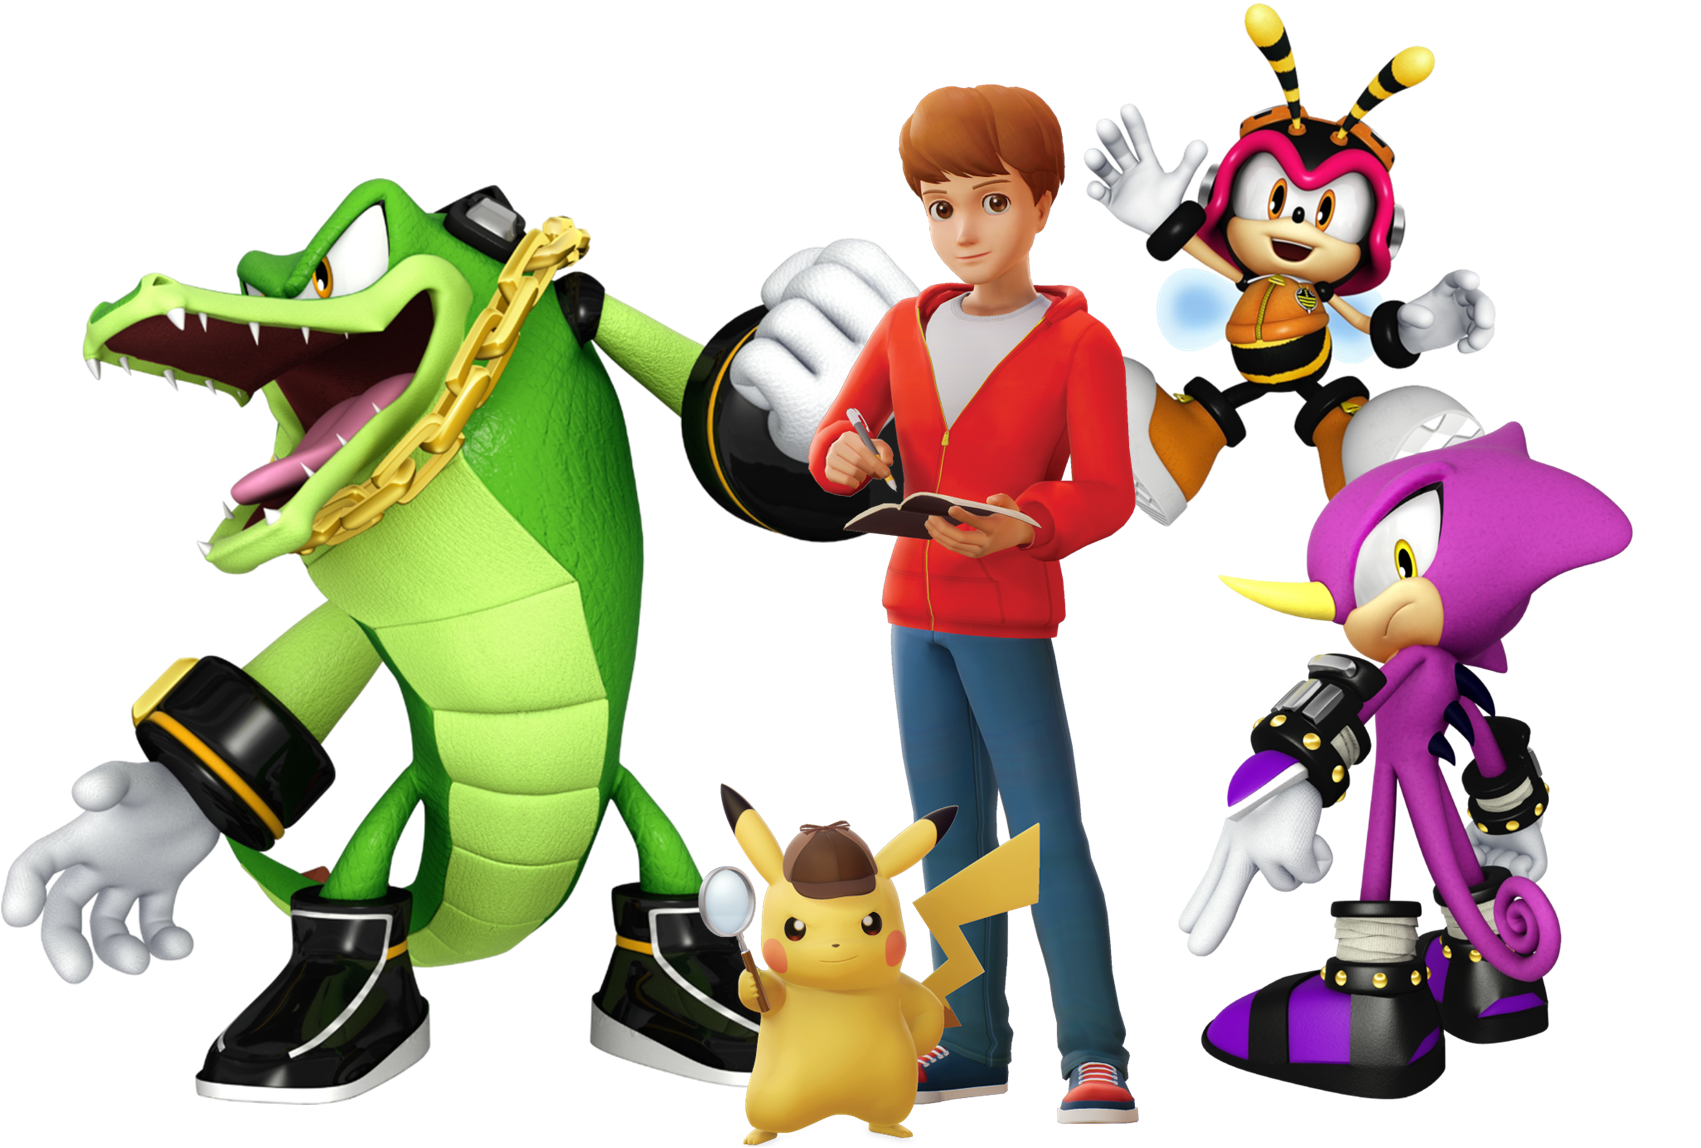 Detective Pikachu Tim Goodman And The Chaotix By Csillag Jozef On